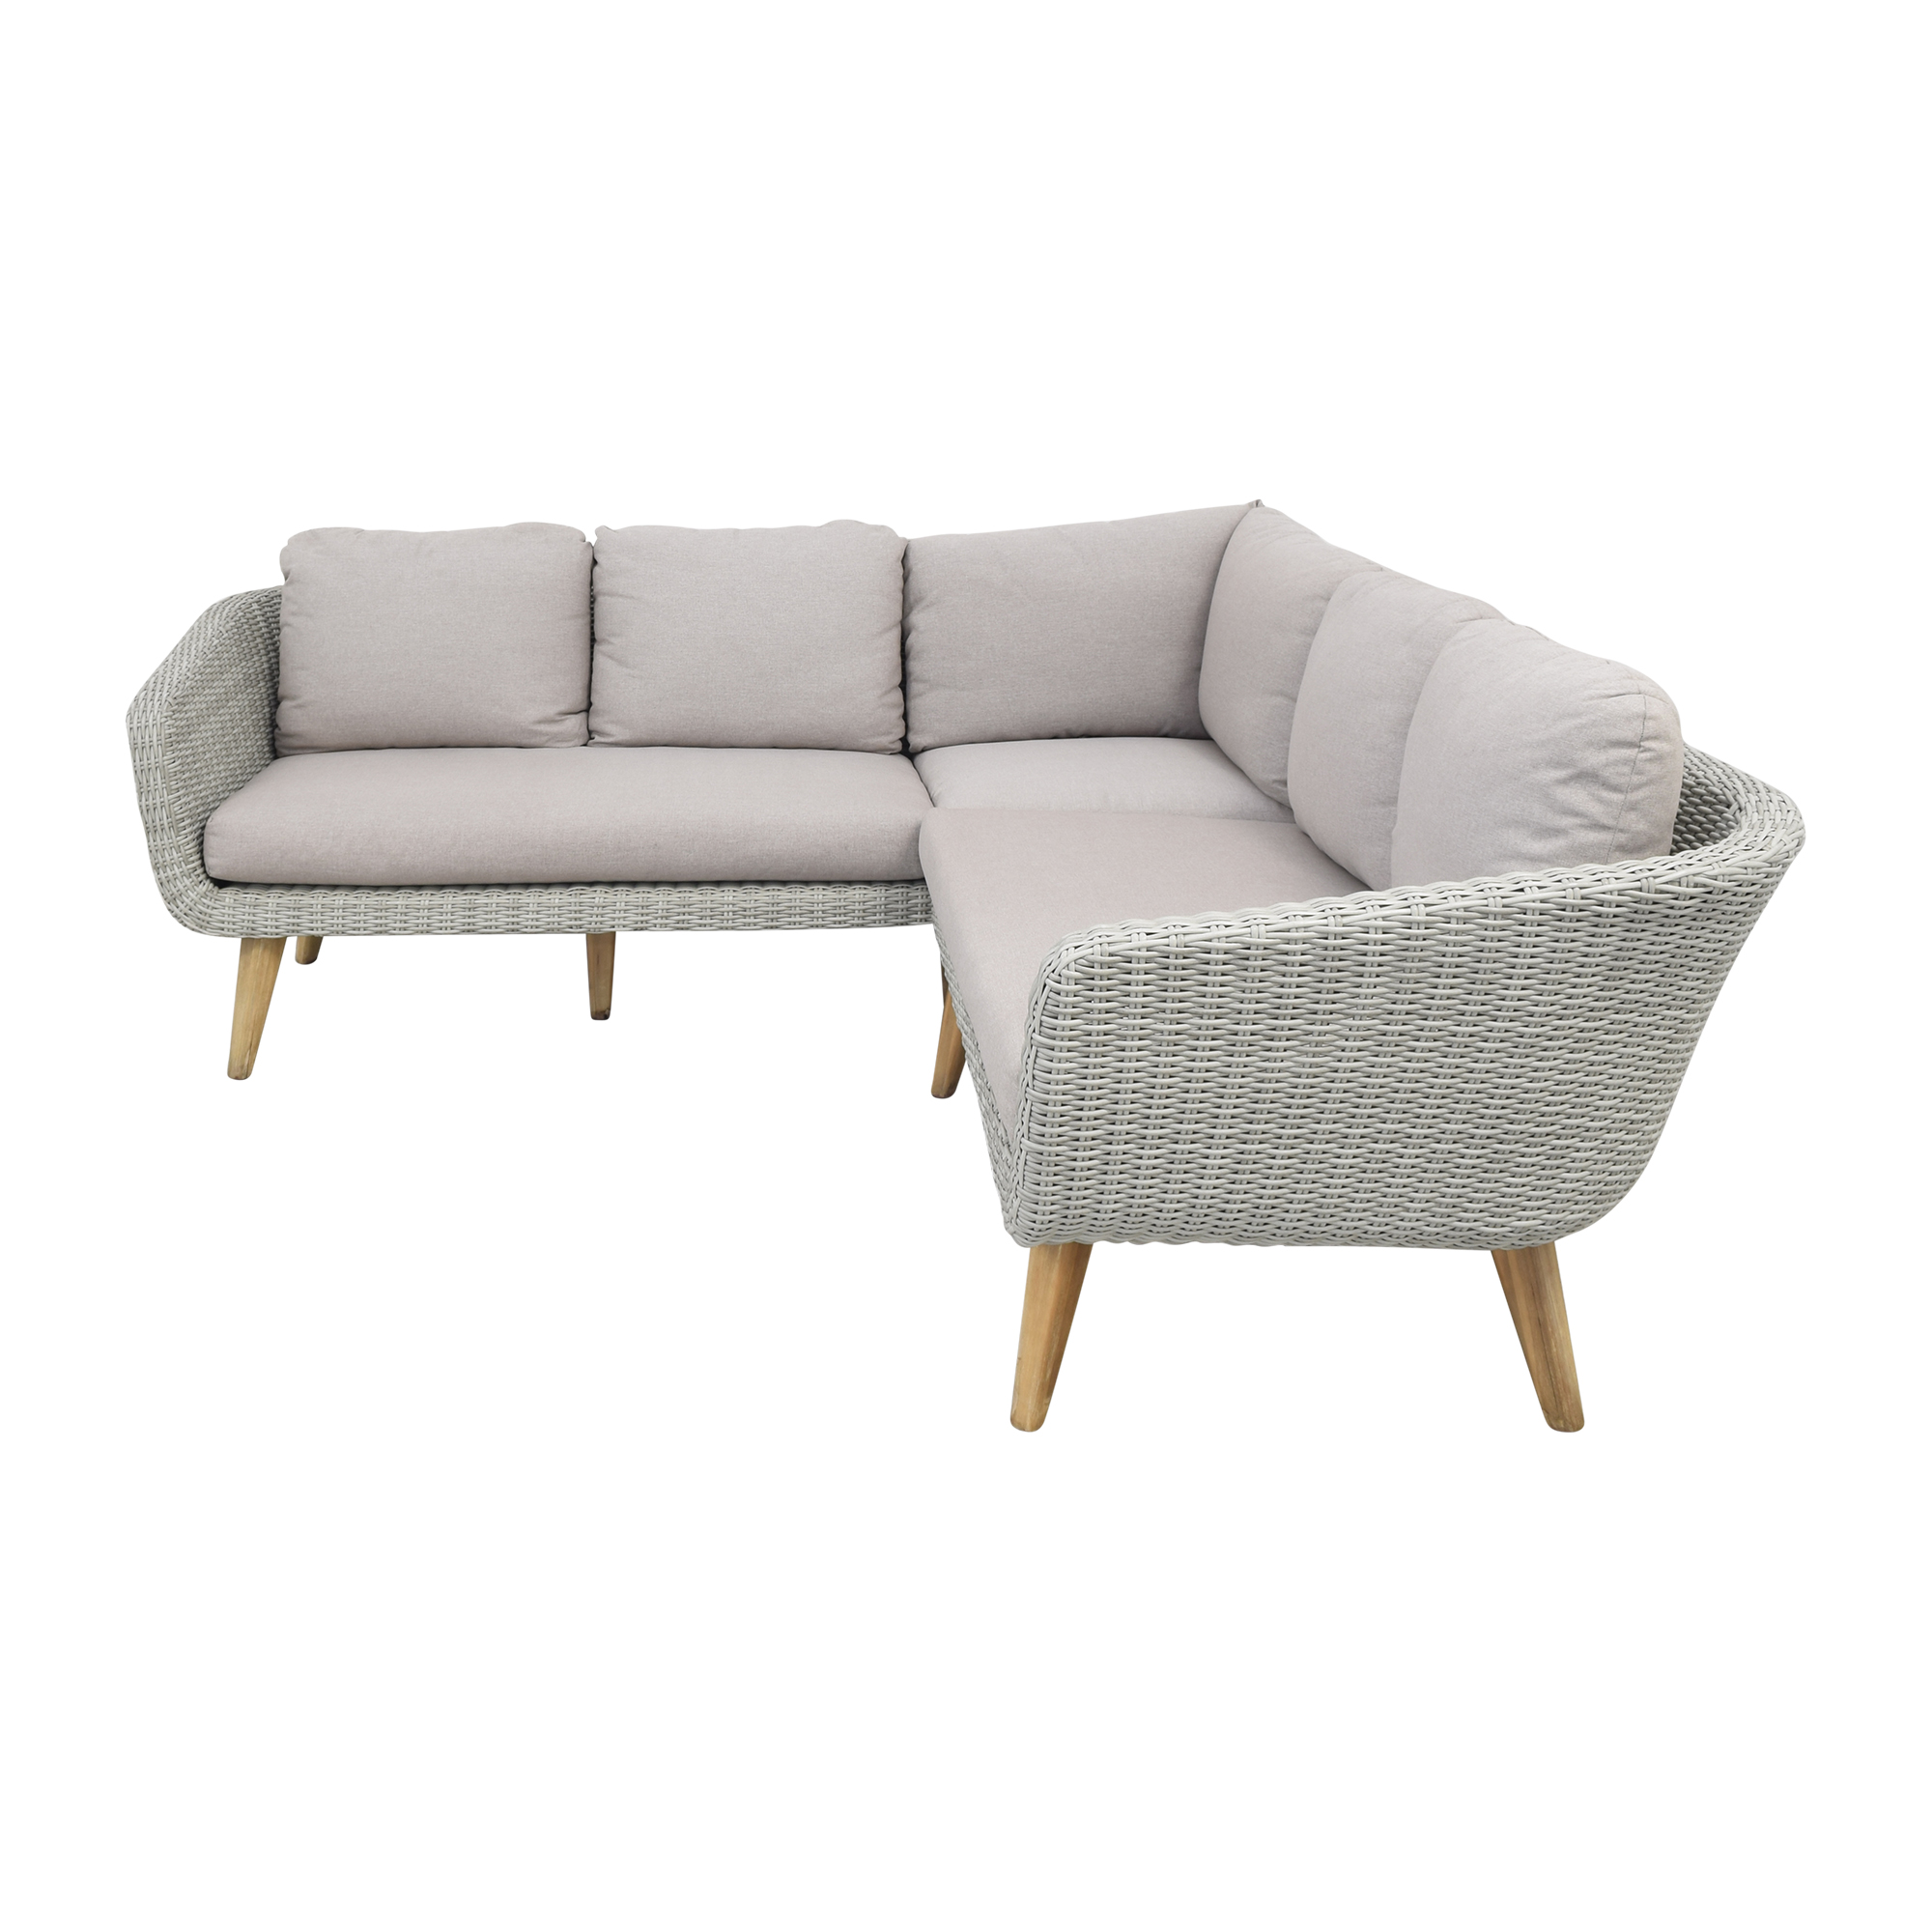 Article Article Ora Beach Sand Sectional used